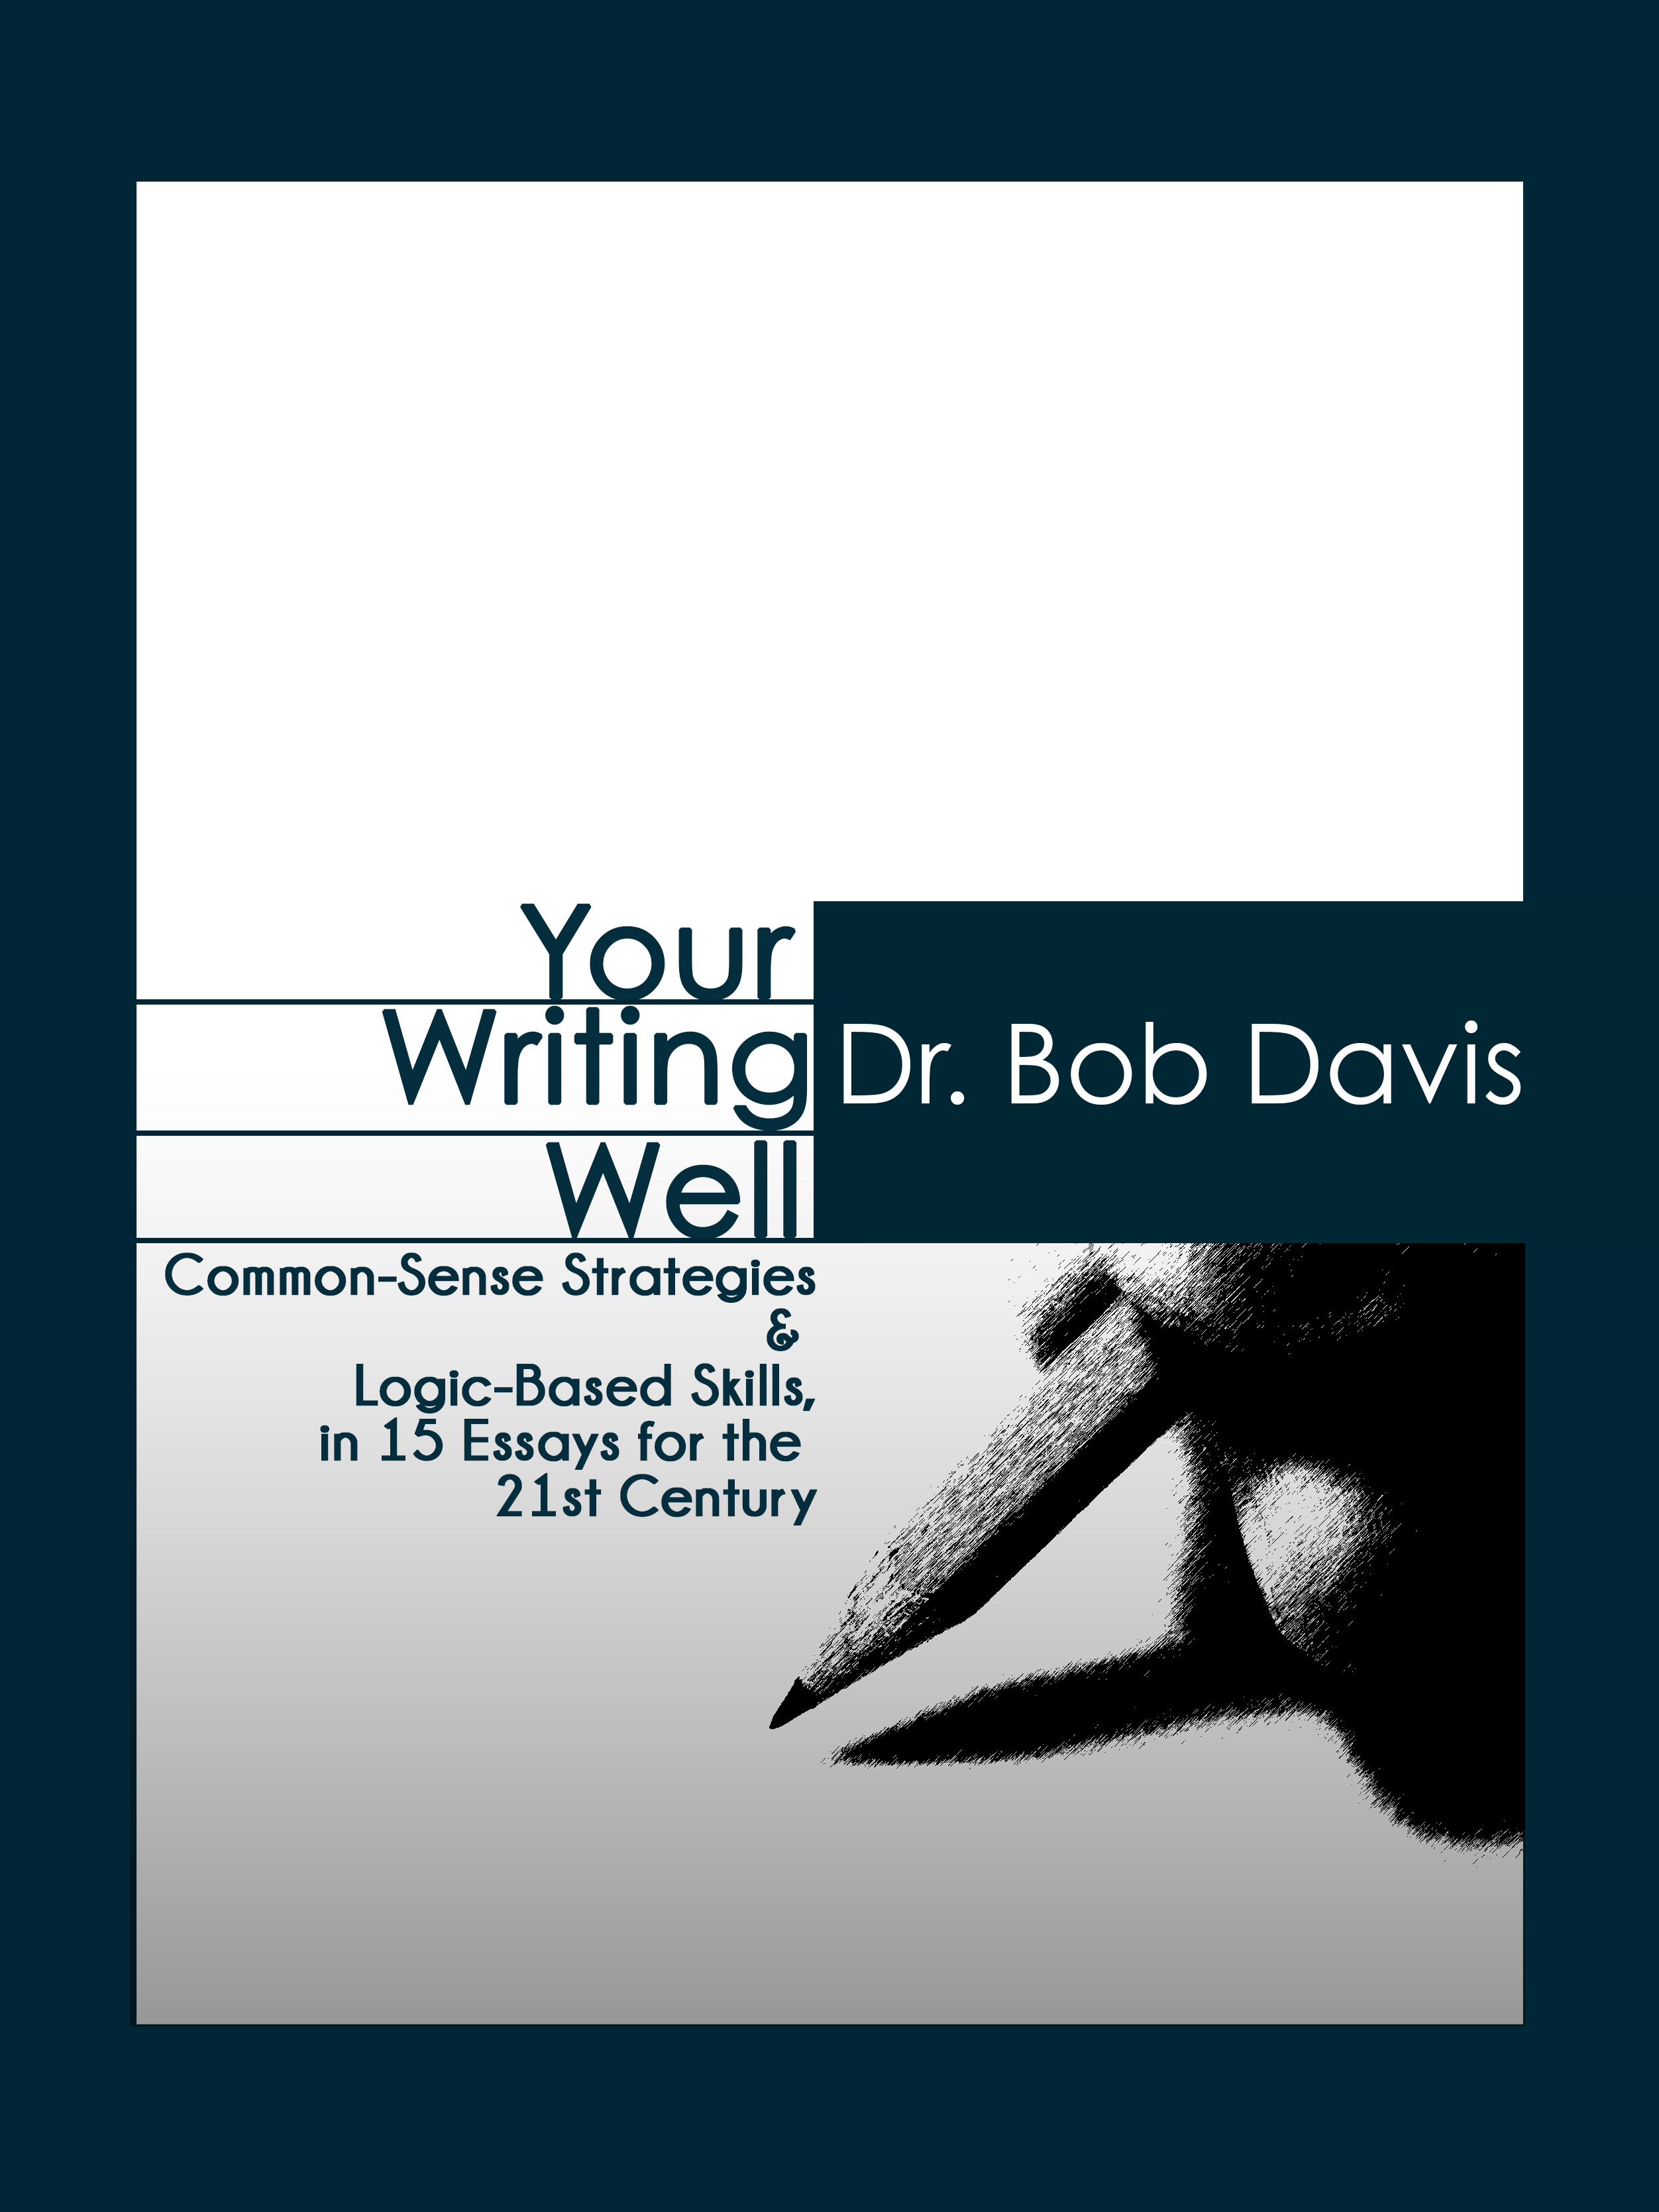 Your Writing Well By: Dr. Bob Davis